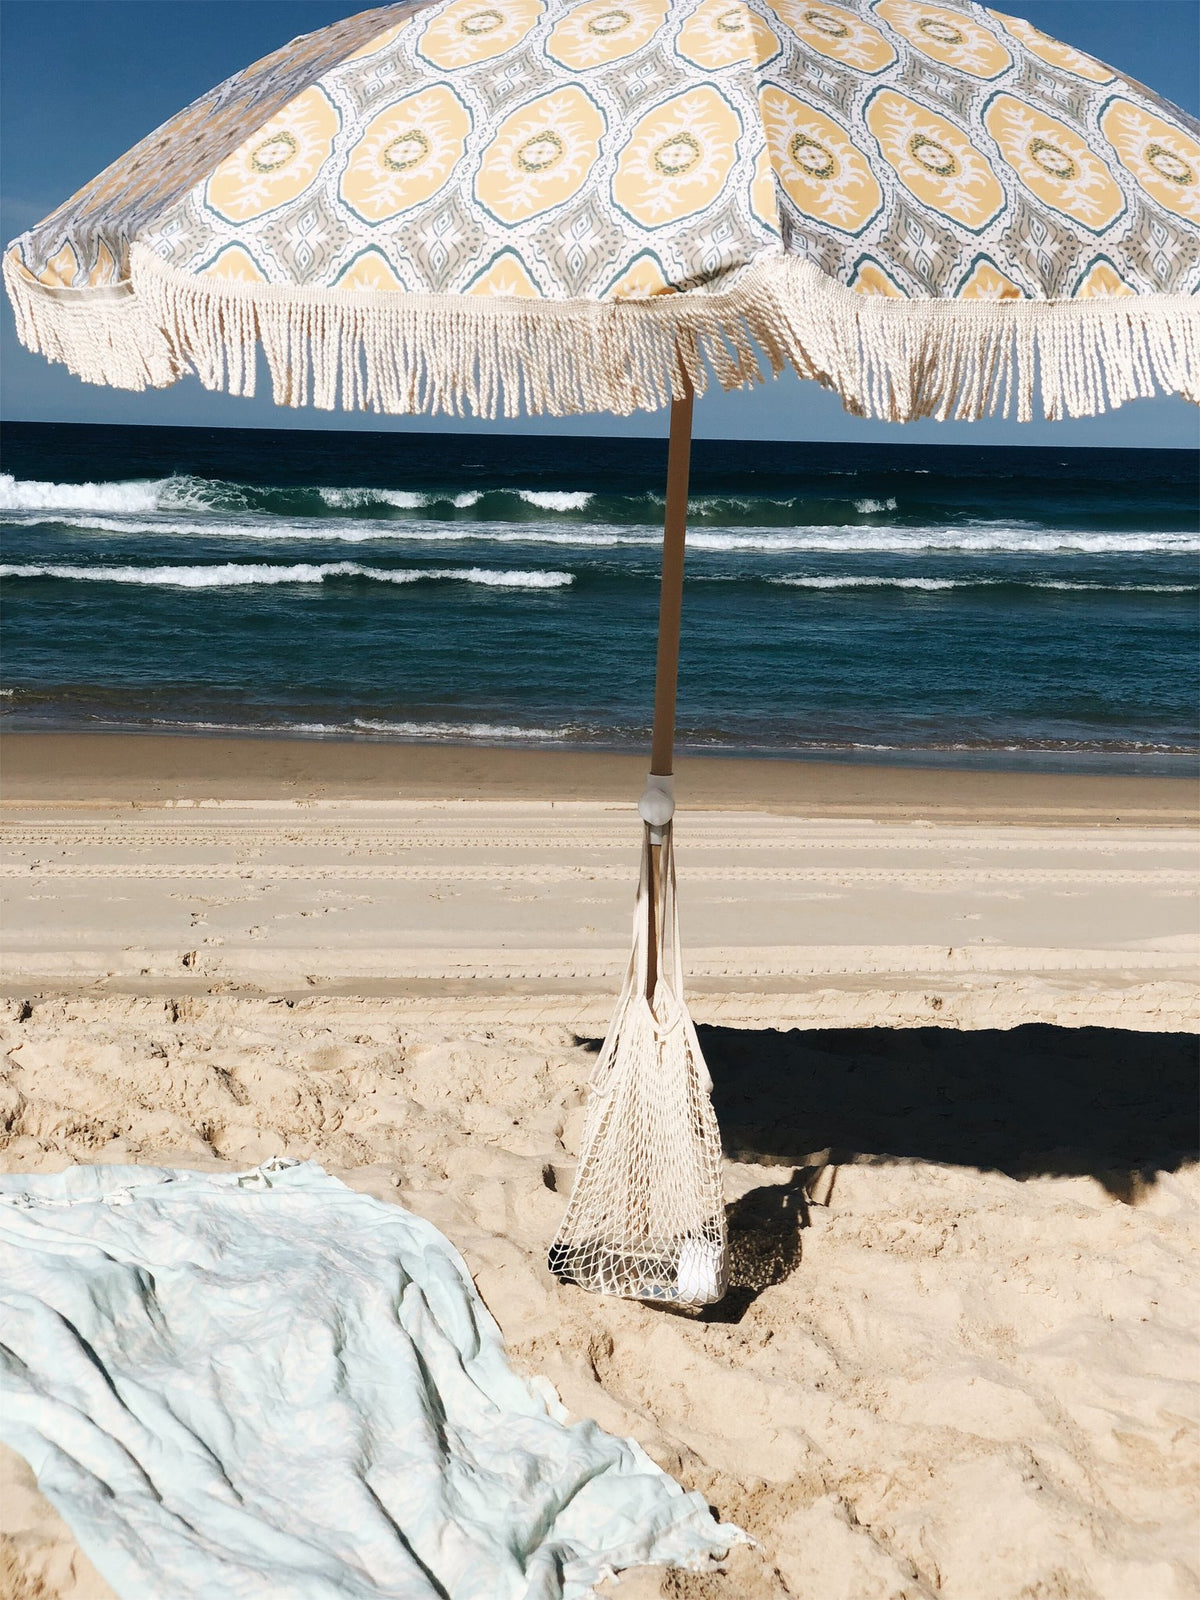 Salty Shadows Beach Umbrella - Ezra